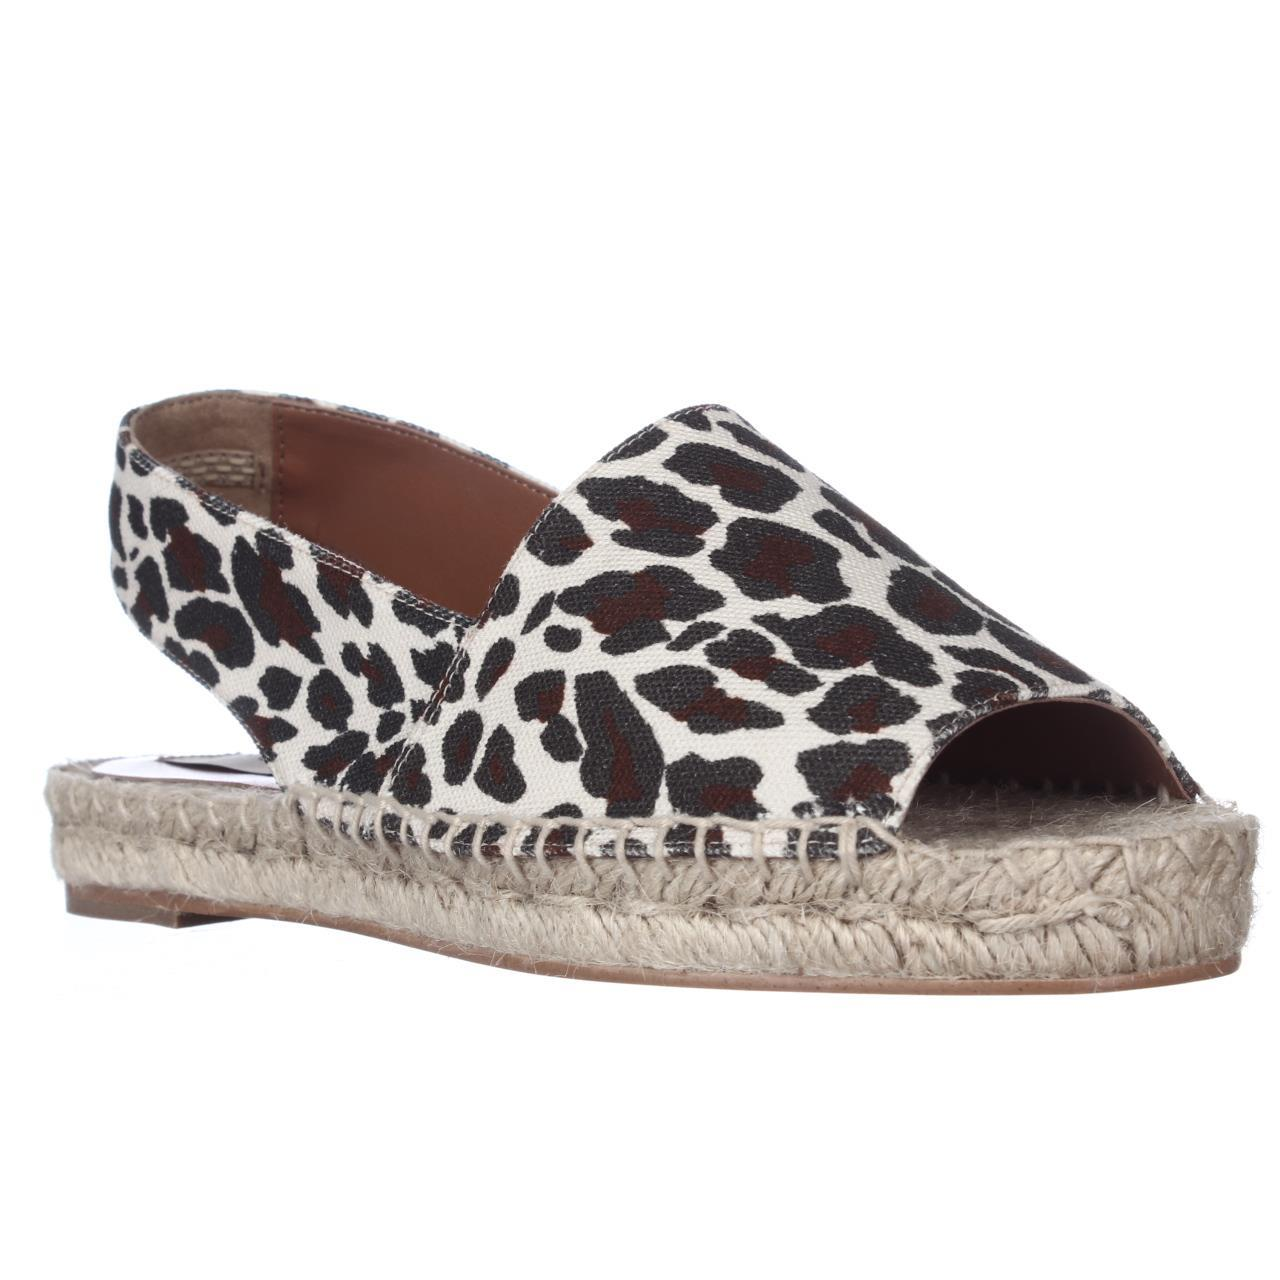 Womens Stella McCartney Chelsea Espadrille Flat Slingback Sandals - Rope Black Brown